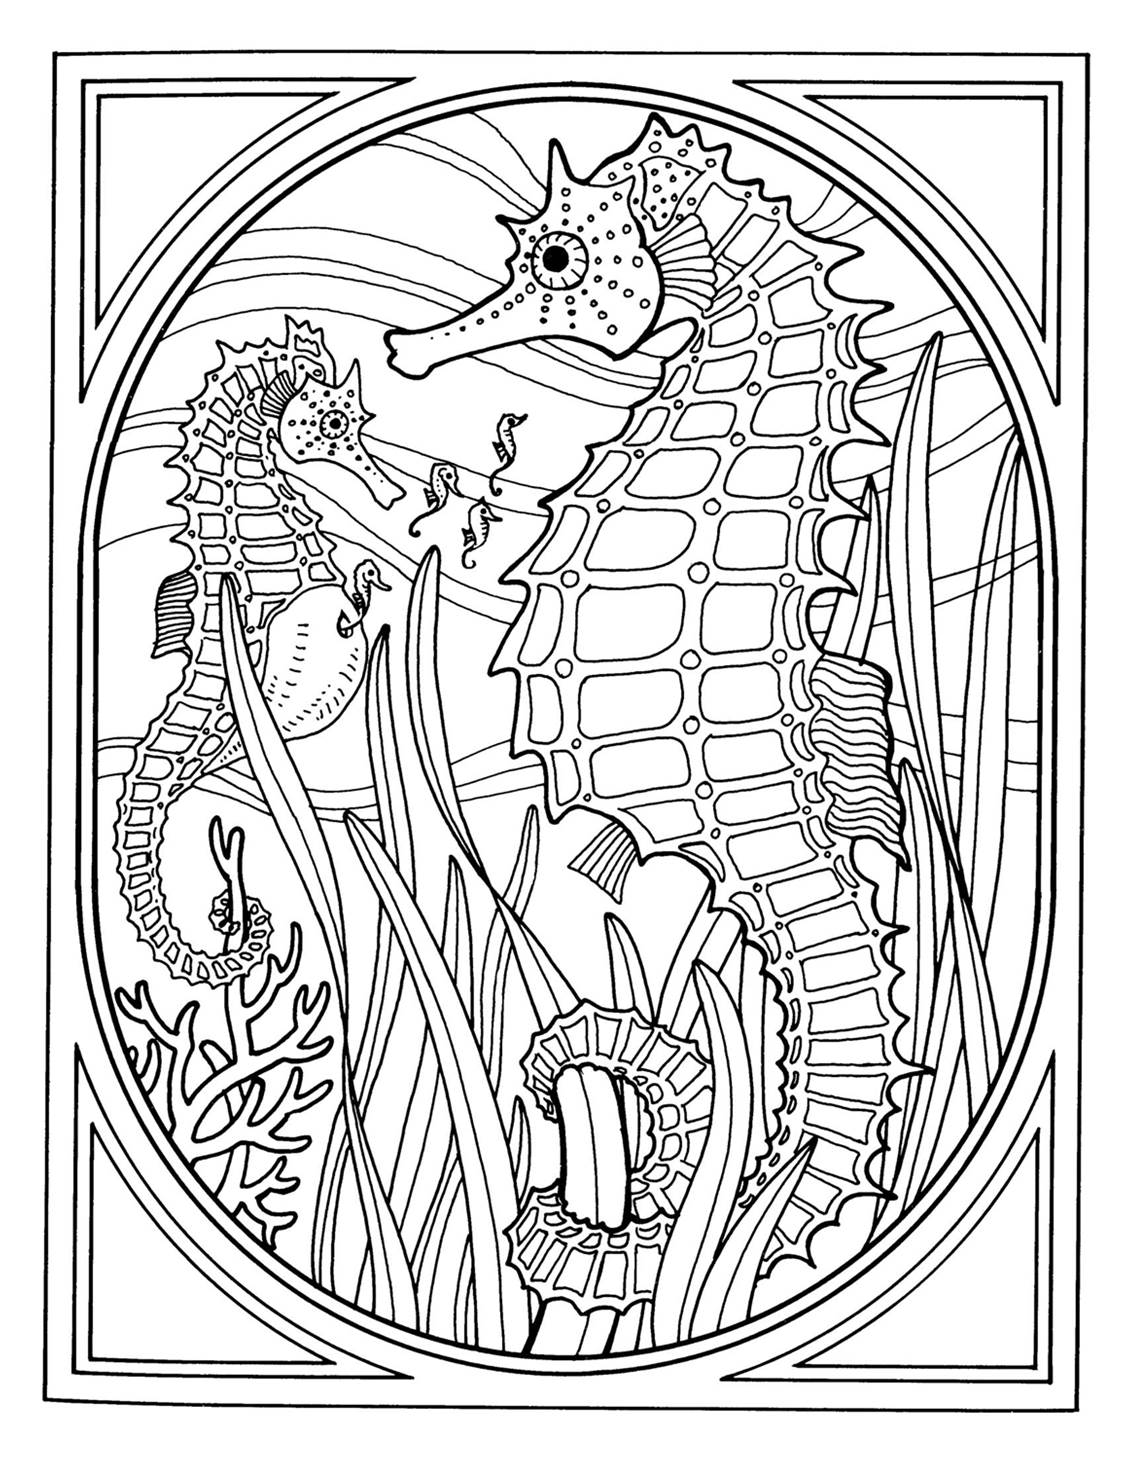 1125x1458 Image Result For Advanced Coloring Pages Of Houses Colouring